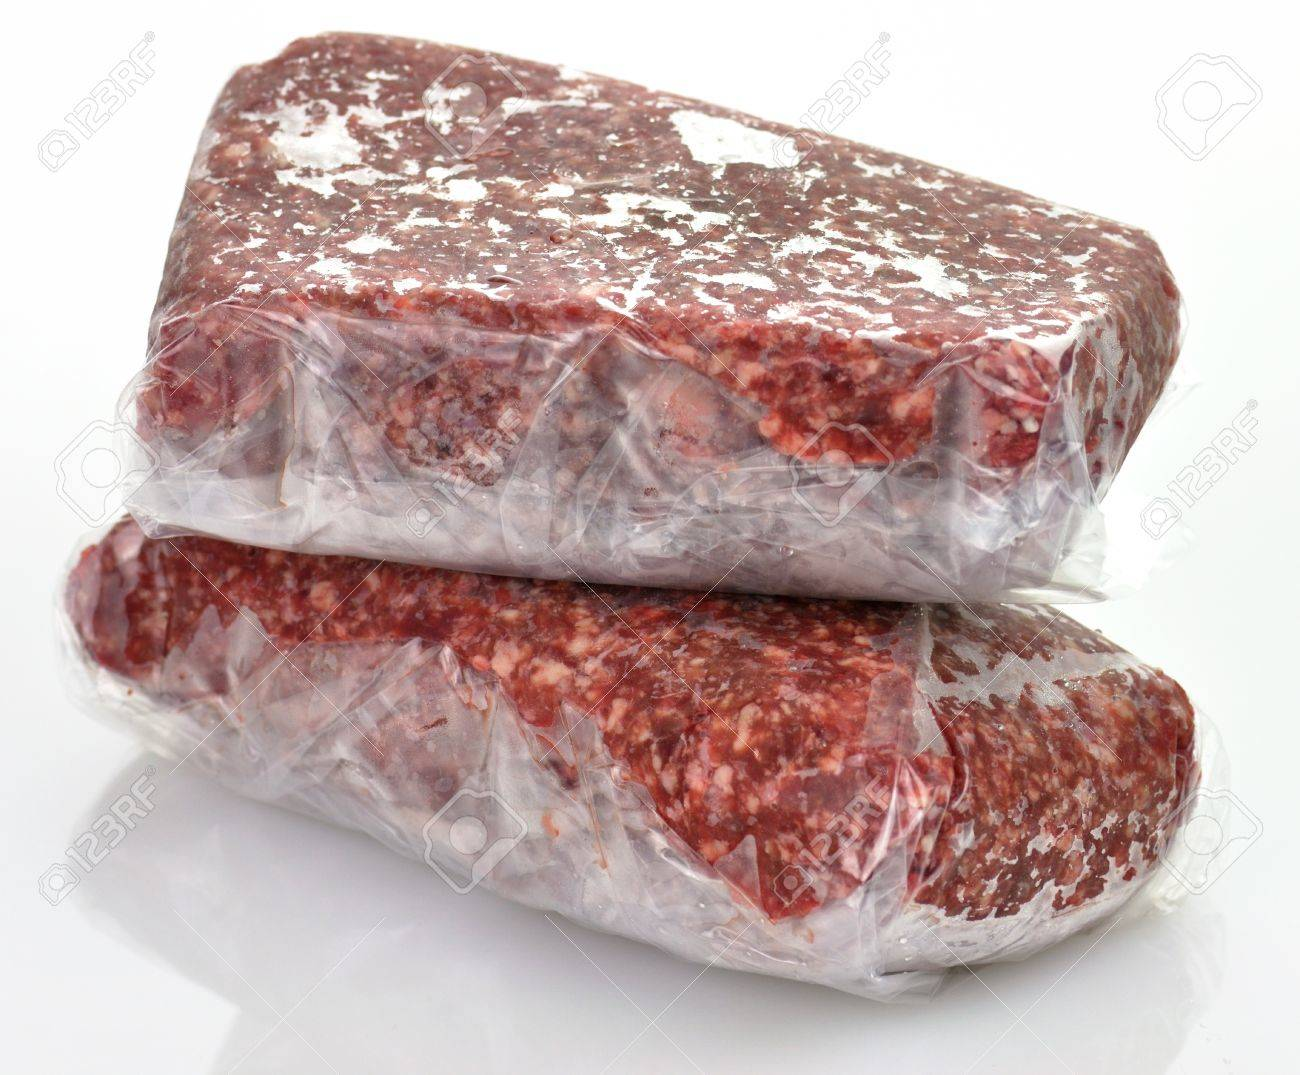 frozen ground meat in plastic package, close up Stock Photo - 9462960